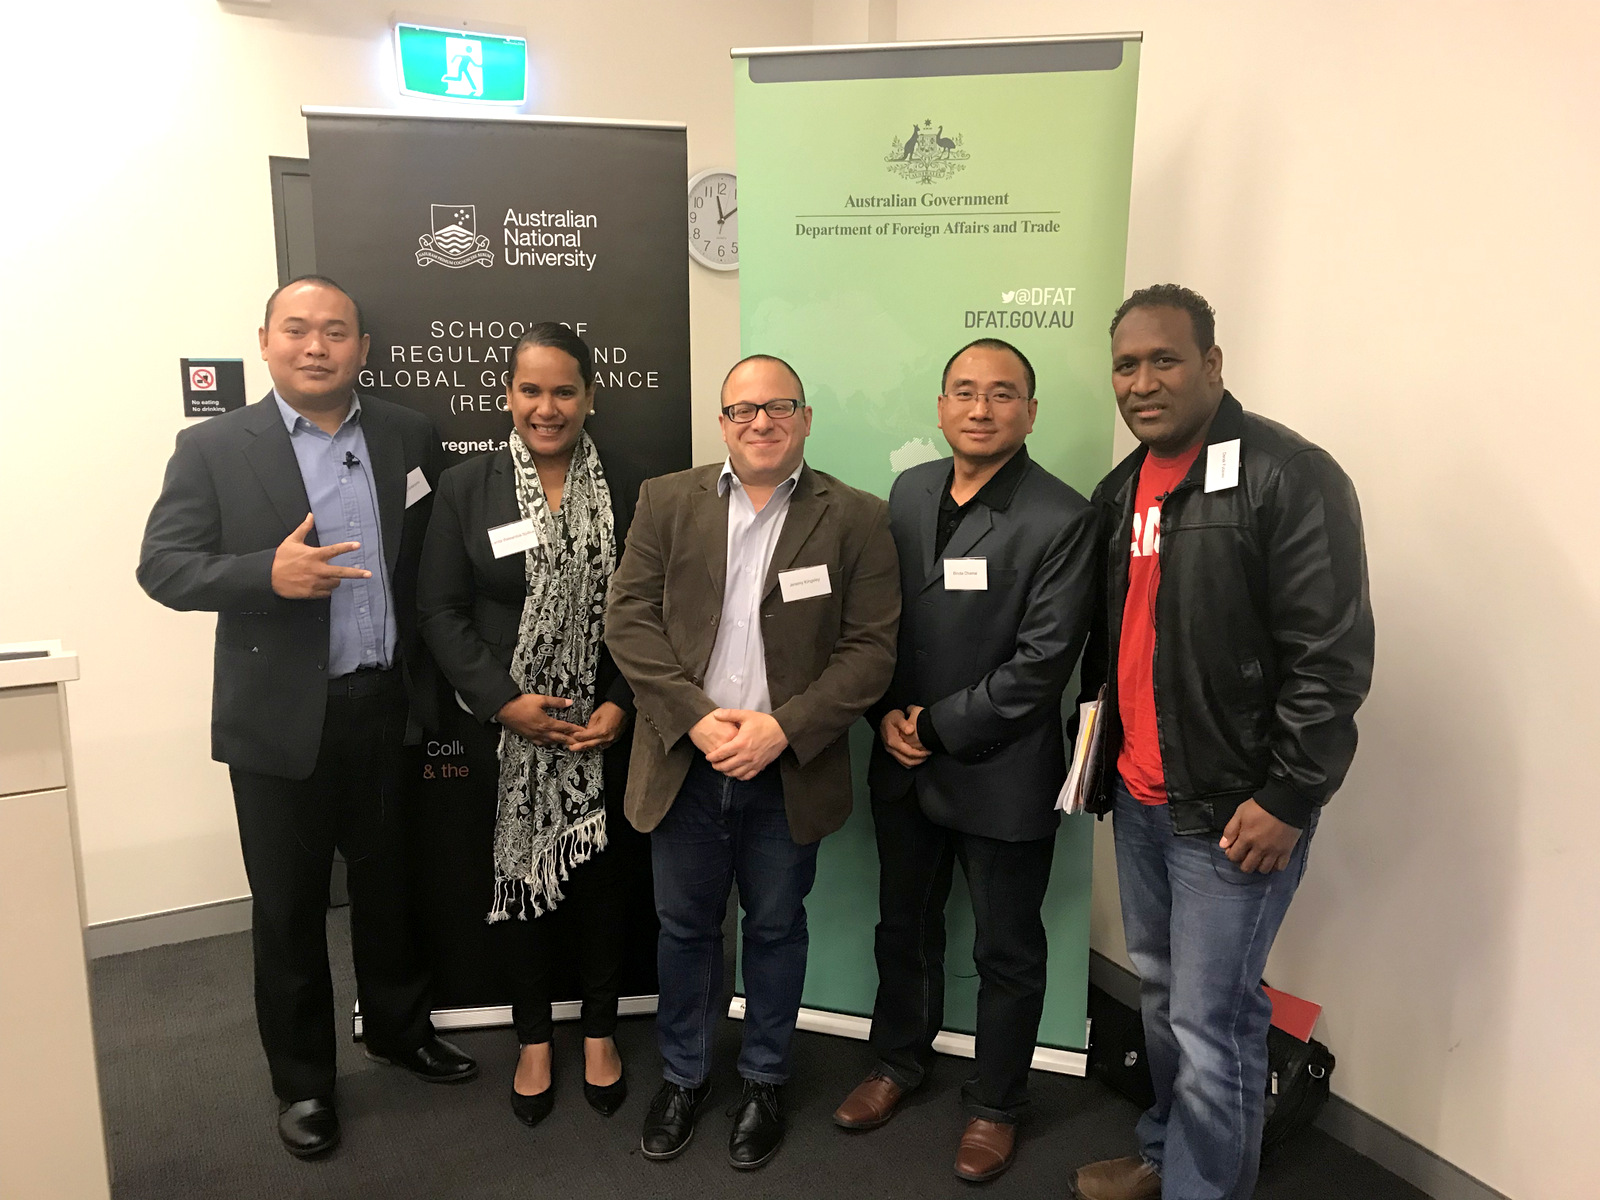 Law & Justice Community of Practice Annual Workshop - 23 November 2018